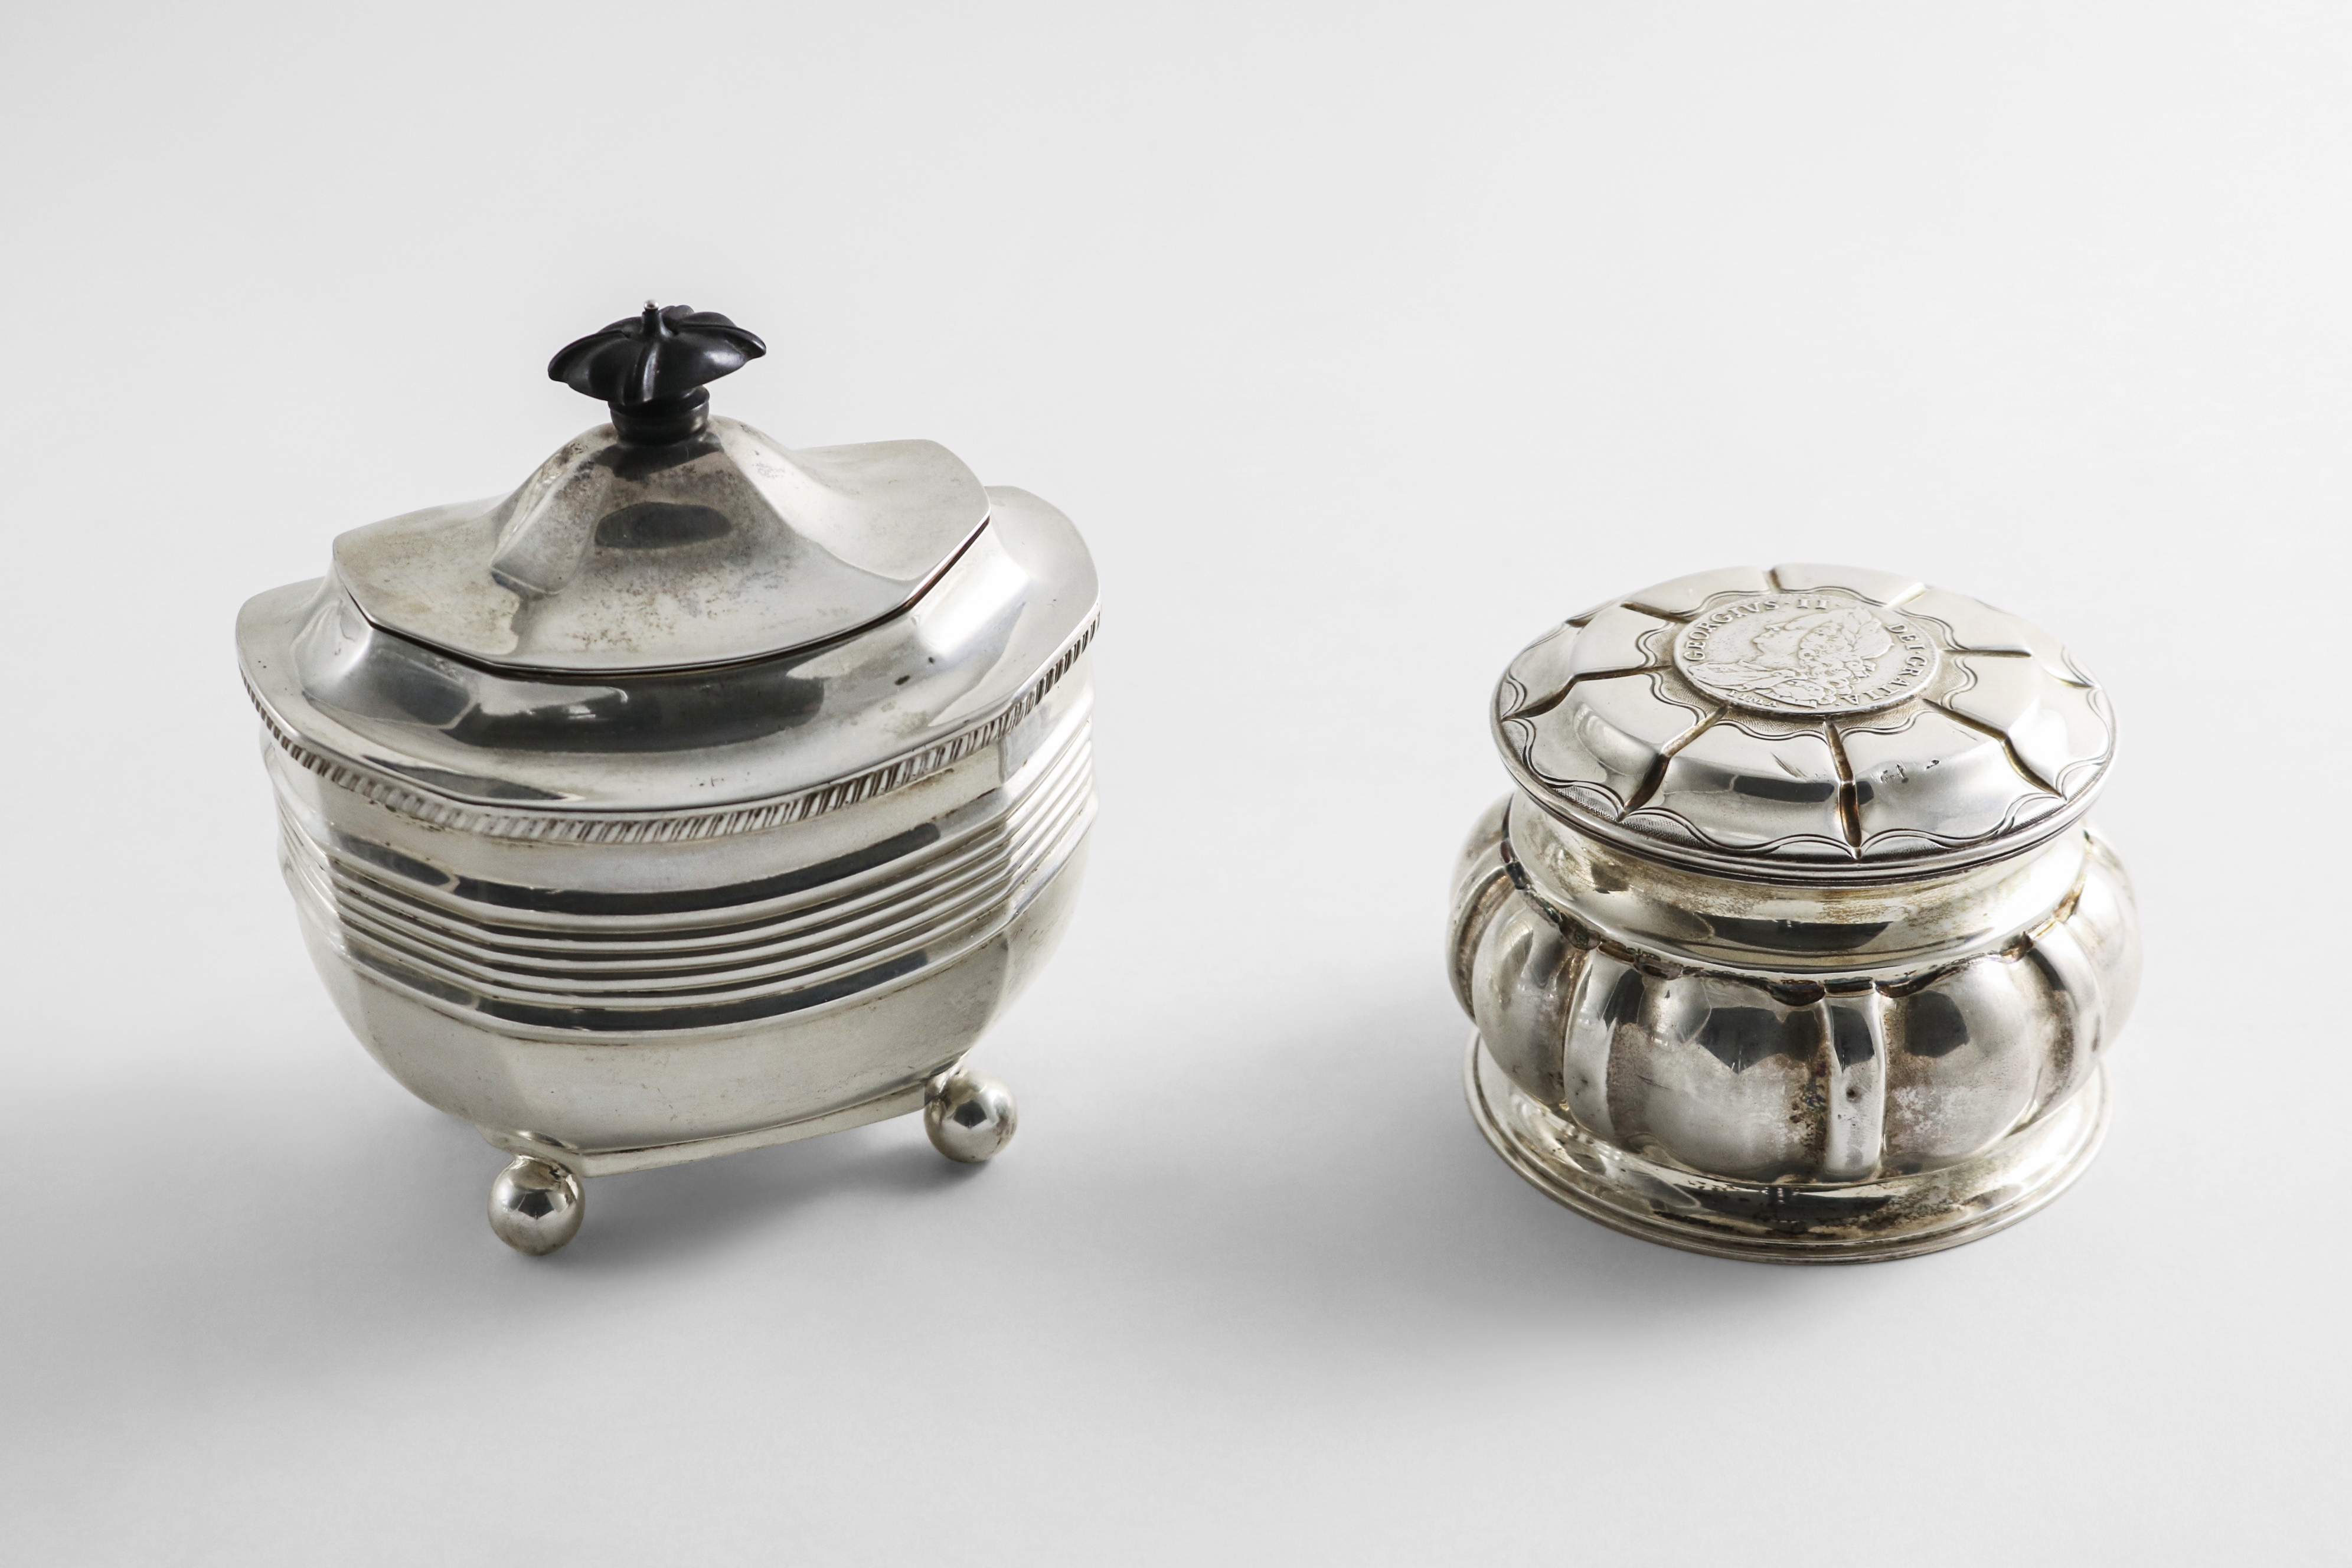 A LATE VICTORIAN SILVER TEA CADDY on ball feet with a domed cover, by T. Bradbury, London 1898 and a